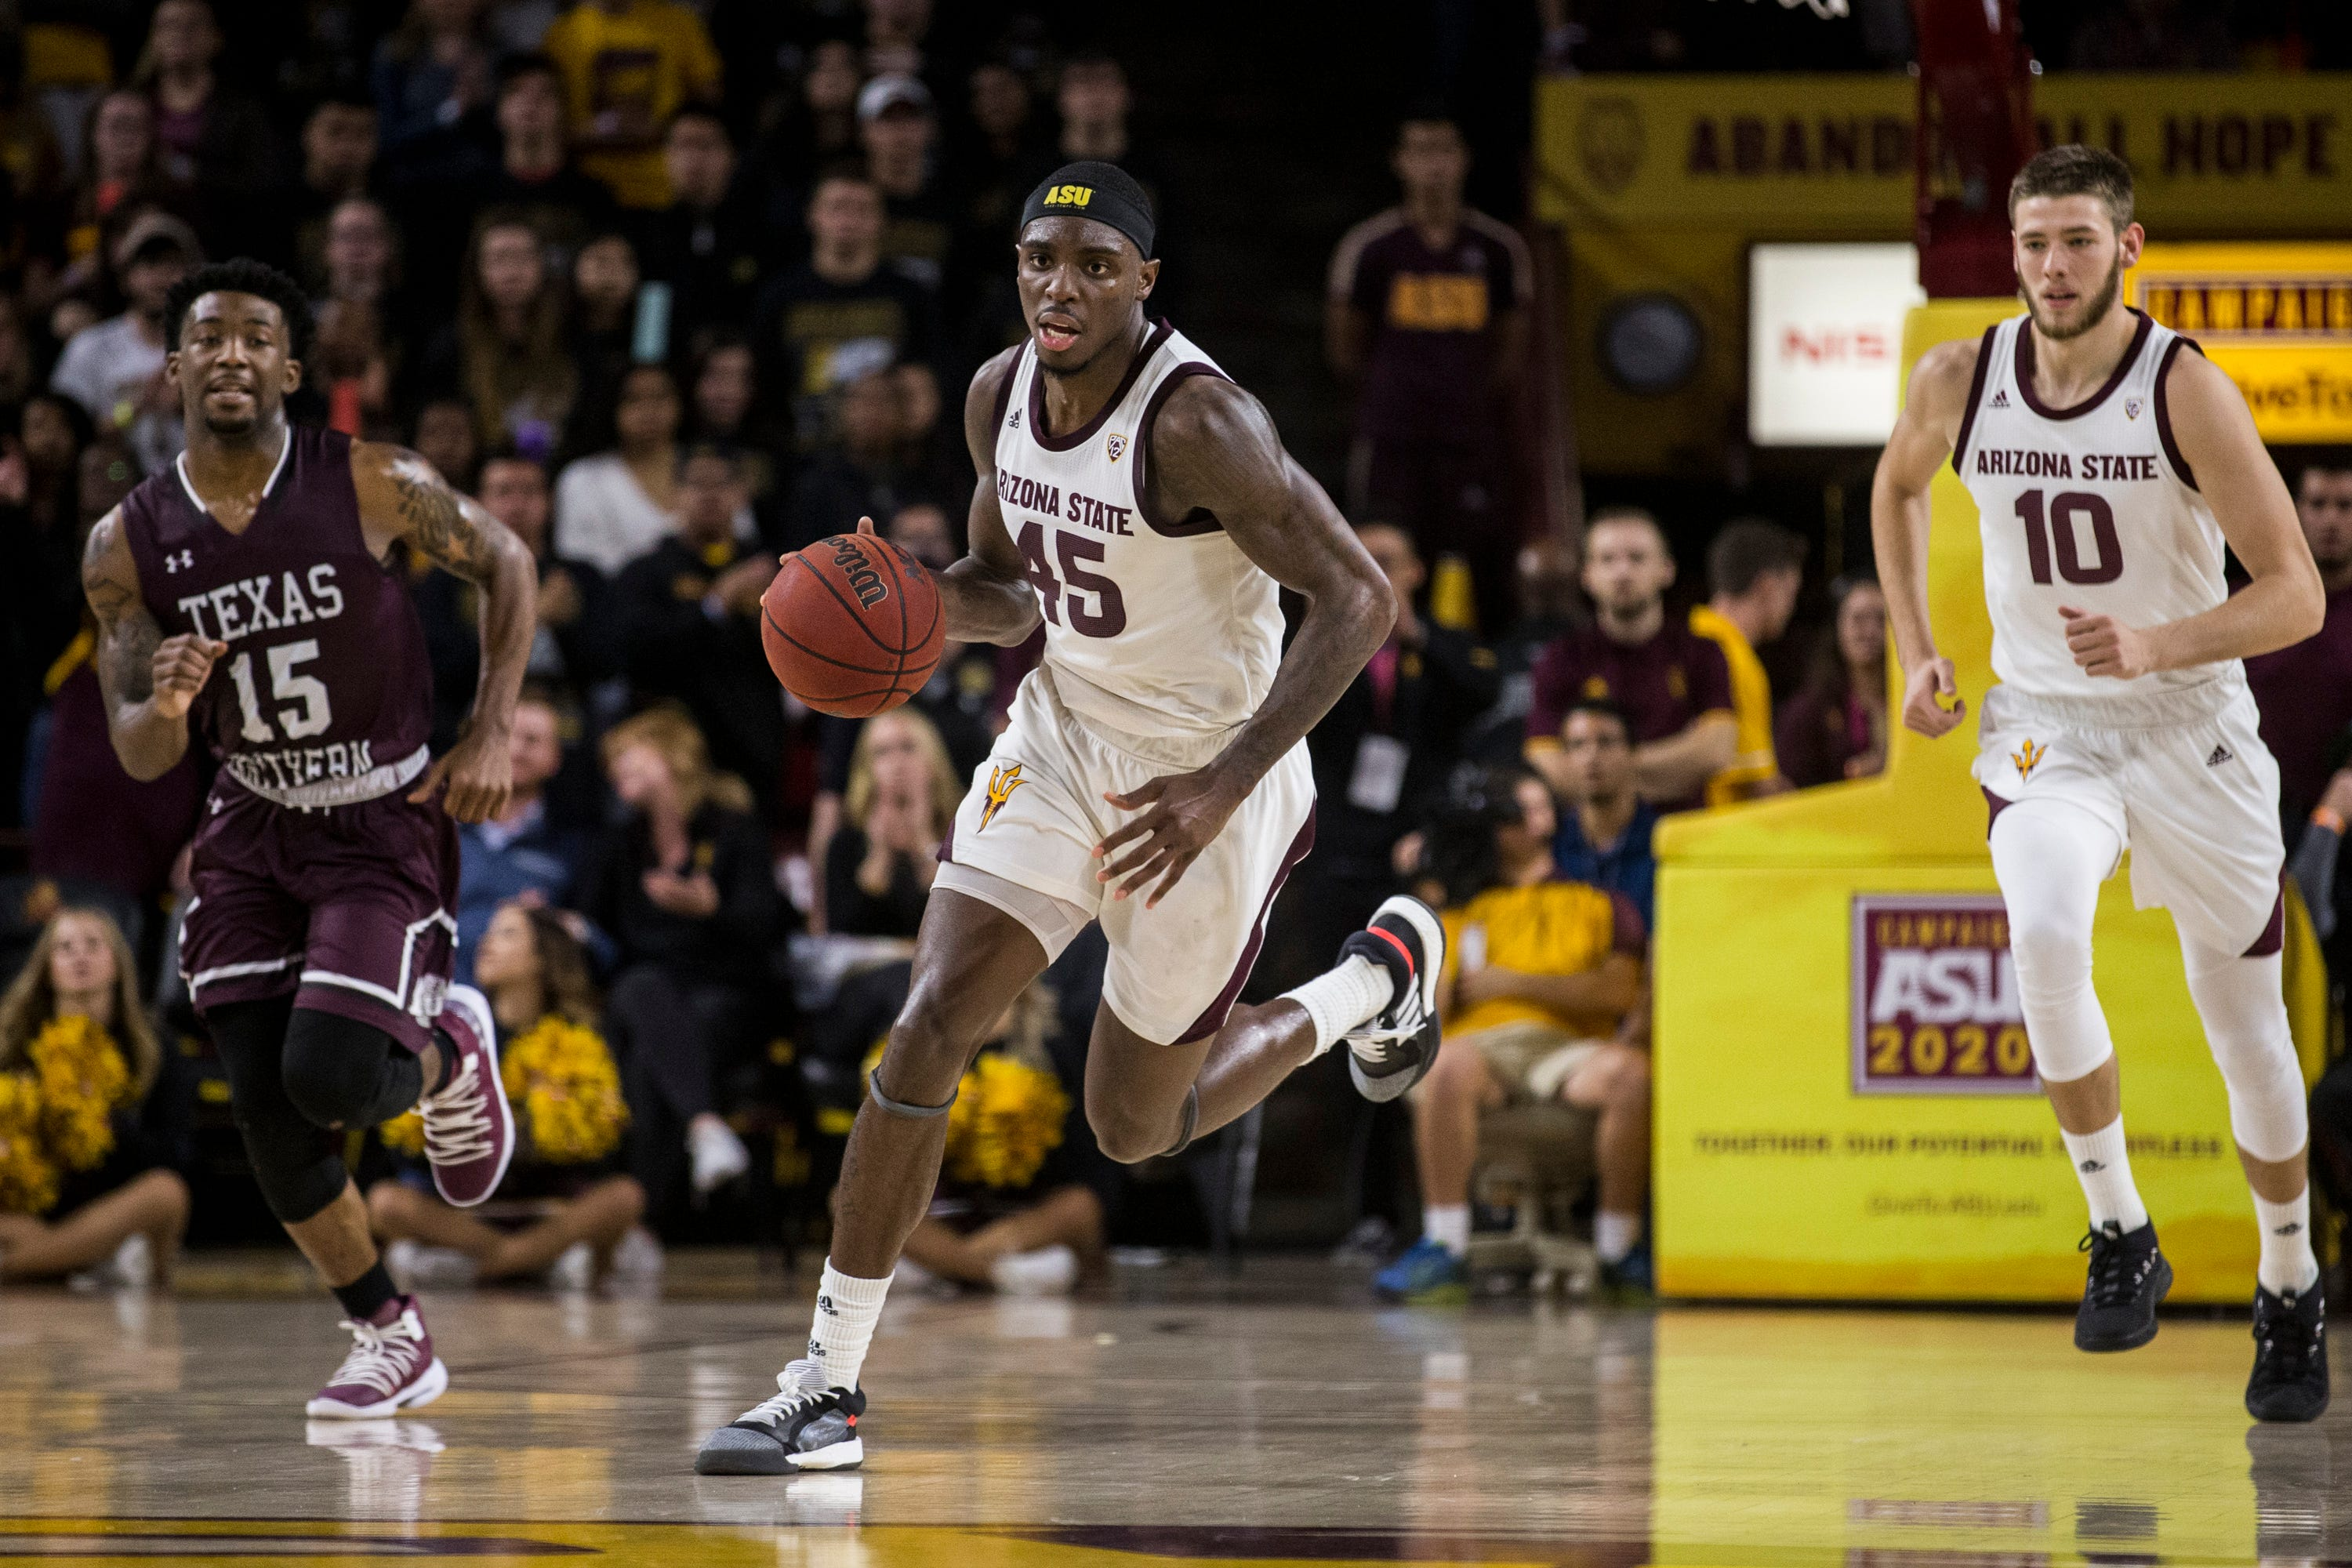 ASU basketball ready for a showdown against fellow unbeaten No. 6 Nevada